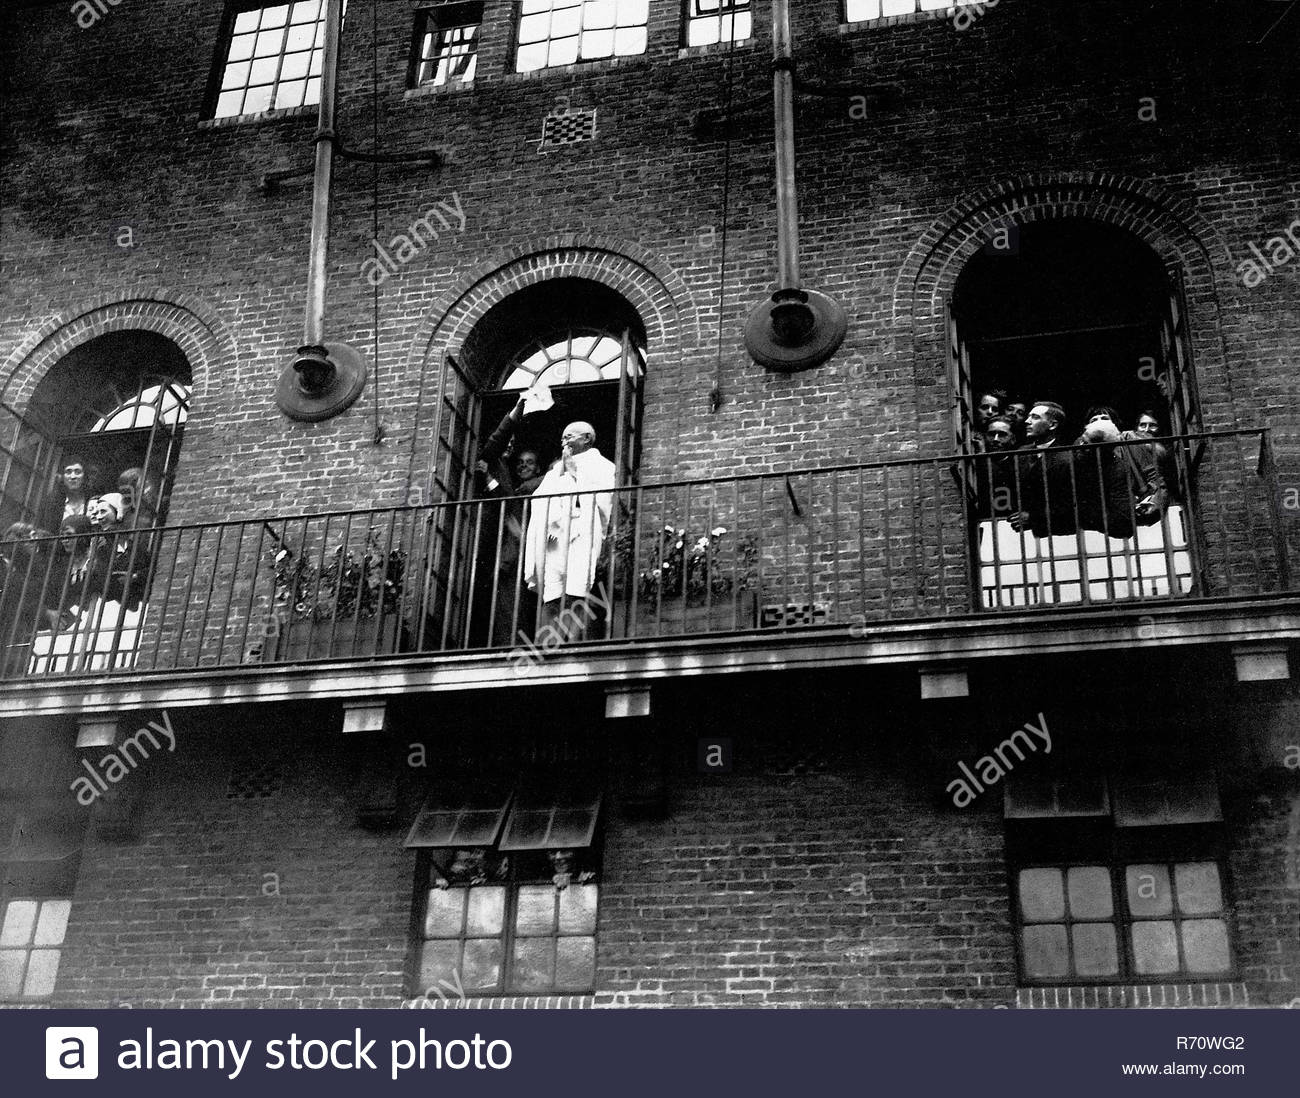 Greeting Londoners from the balcony of his residence at Kingsley Hall, London, England, September 1931 - MODEL RELEASE NOT AVAILABLE - Stock Image